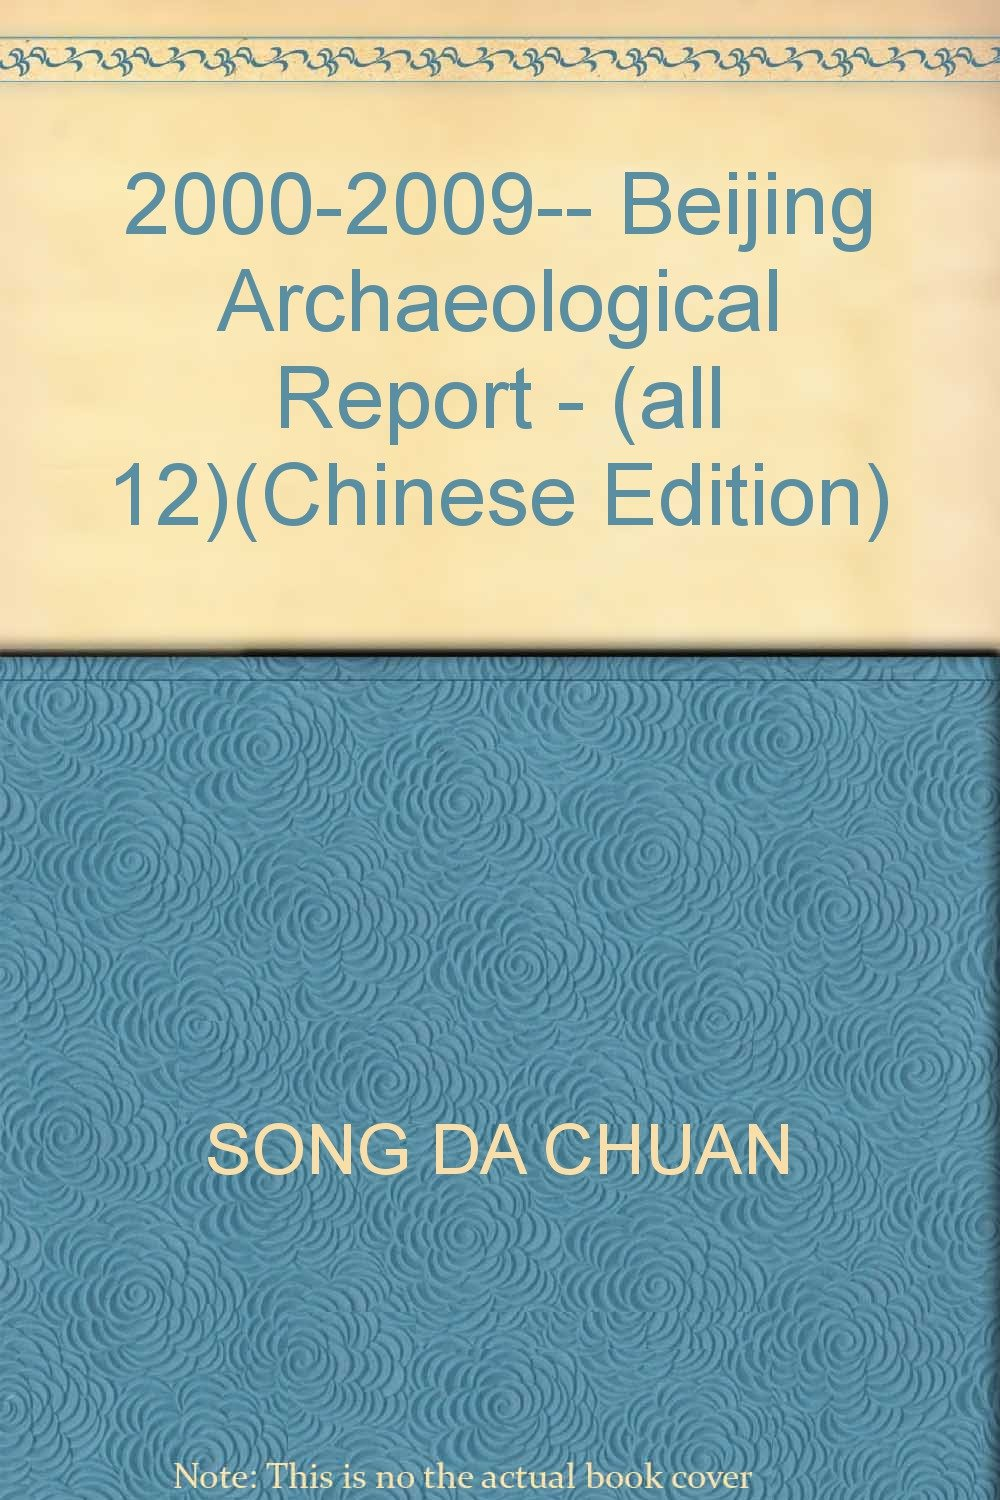 2000-2009-- Beijing Archaeological Report - (all 12)(Chinese Edition) PDF